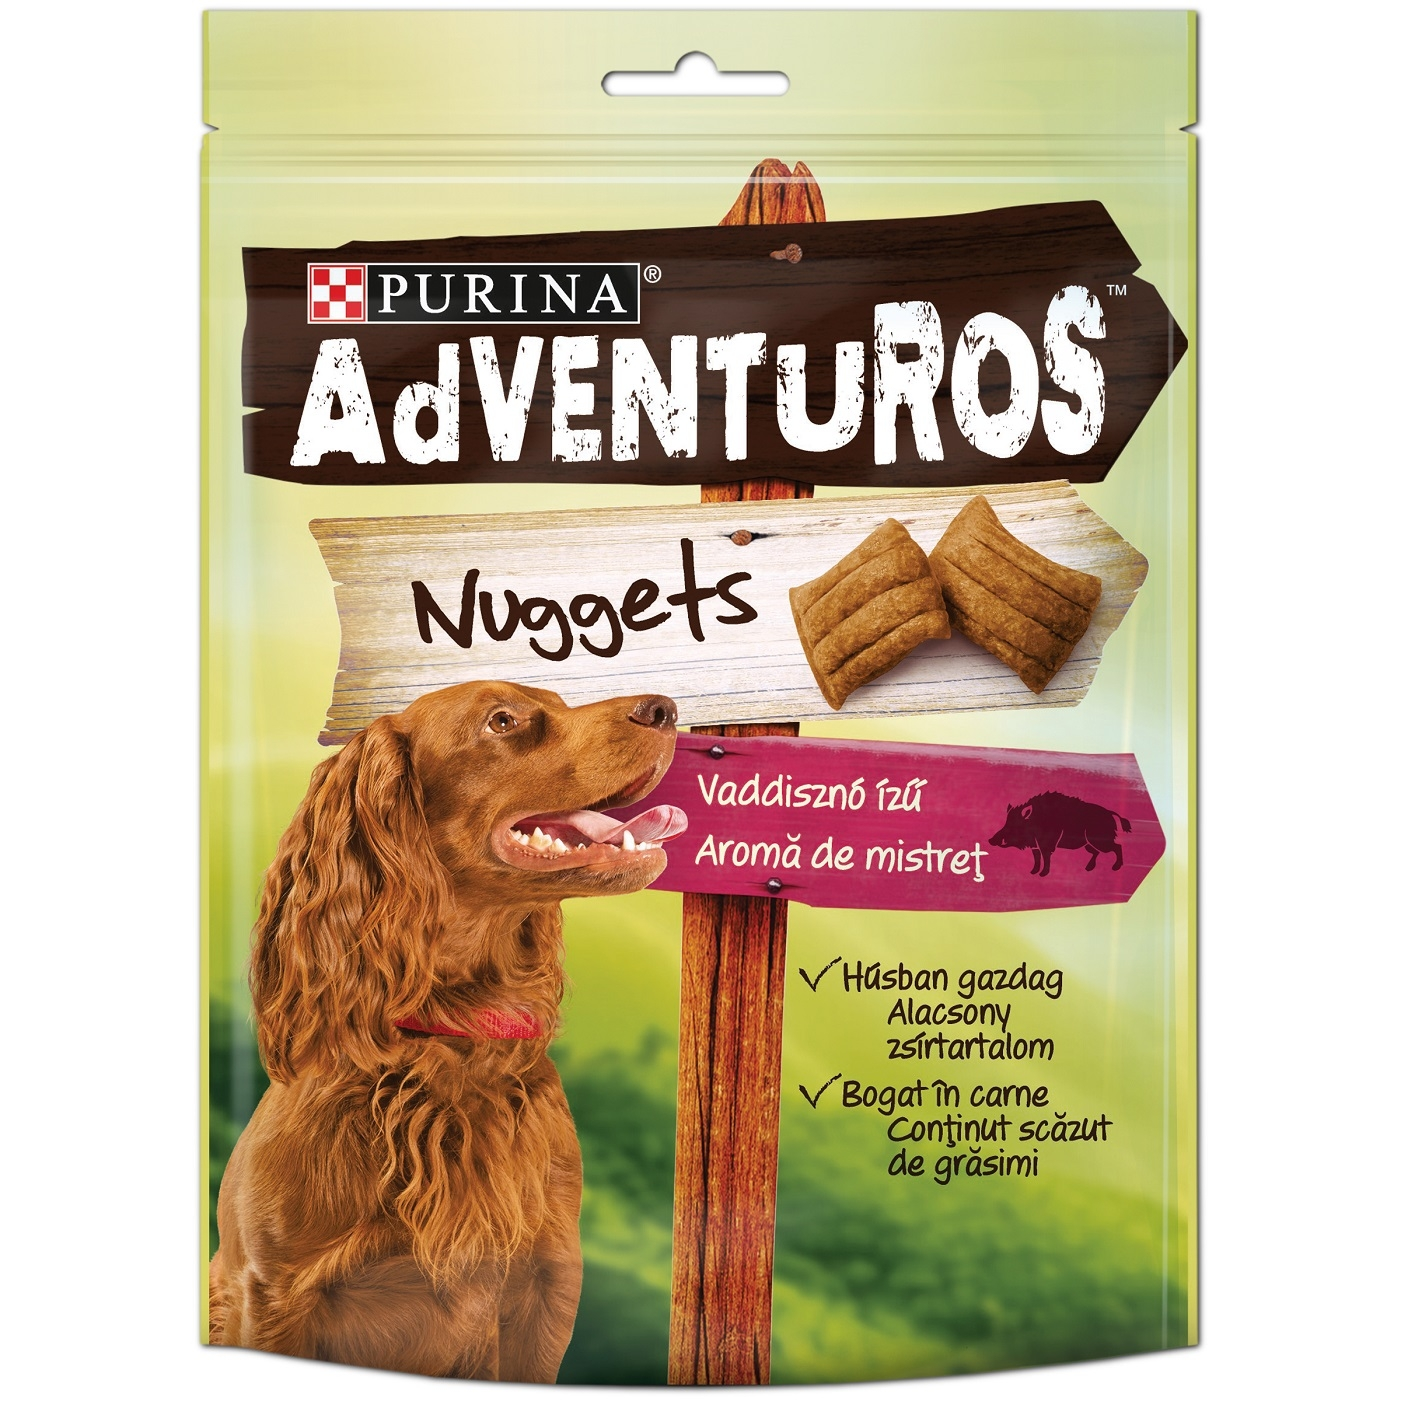 Purina Adventuros Nuggets Mistret 90 g